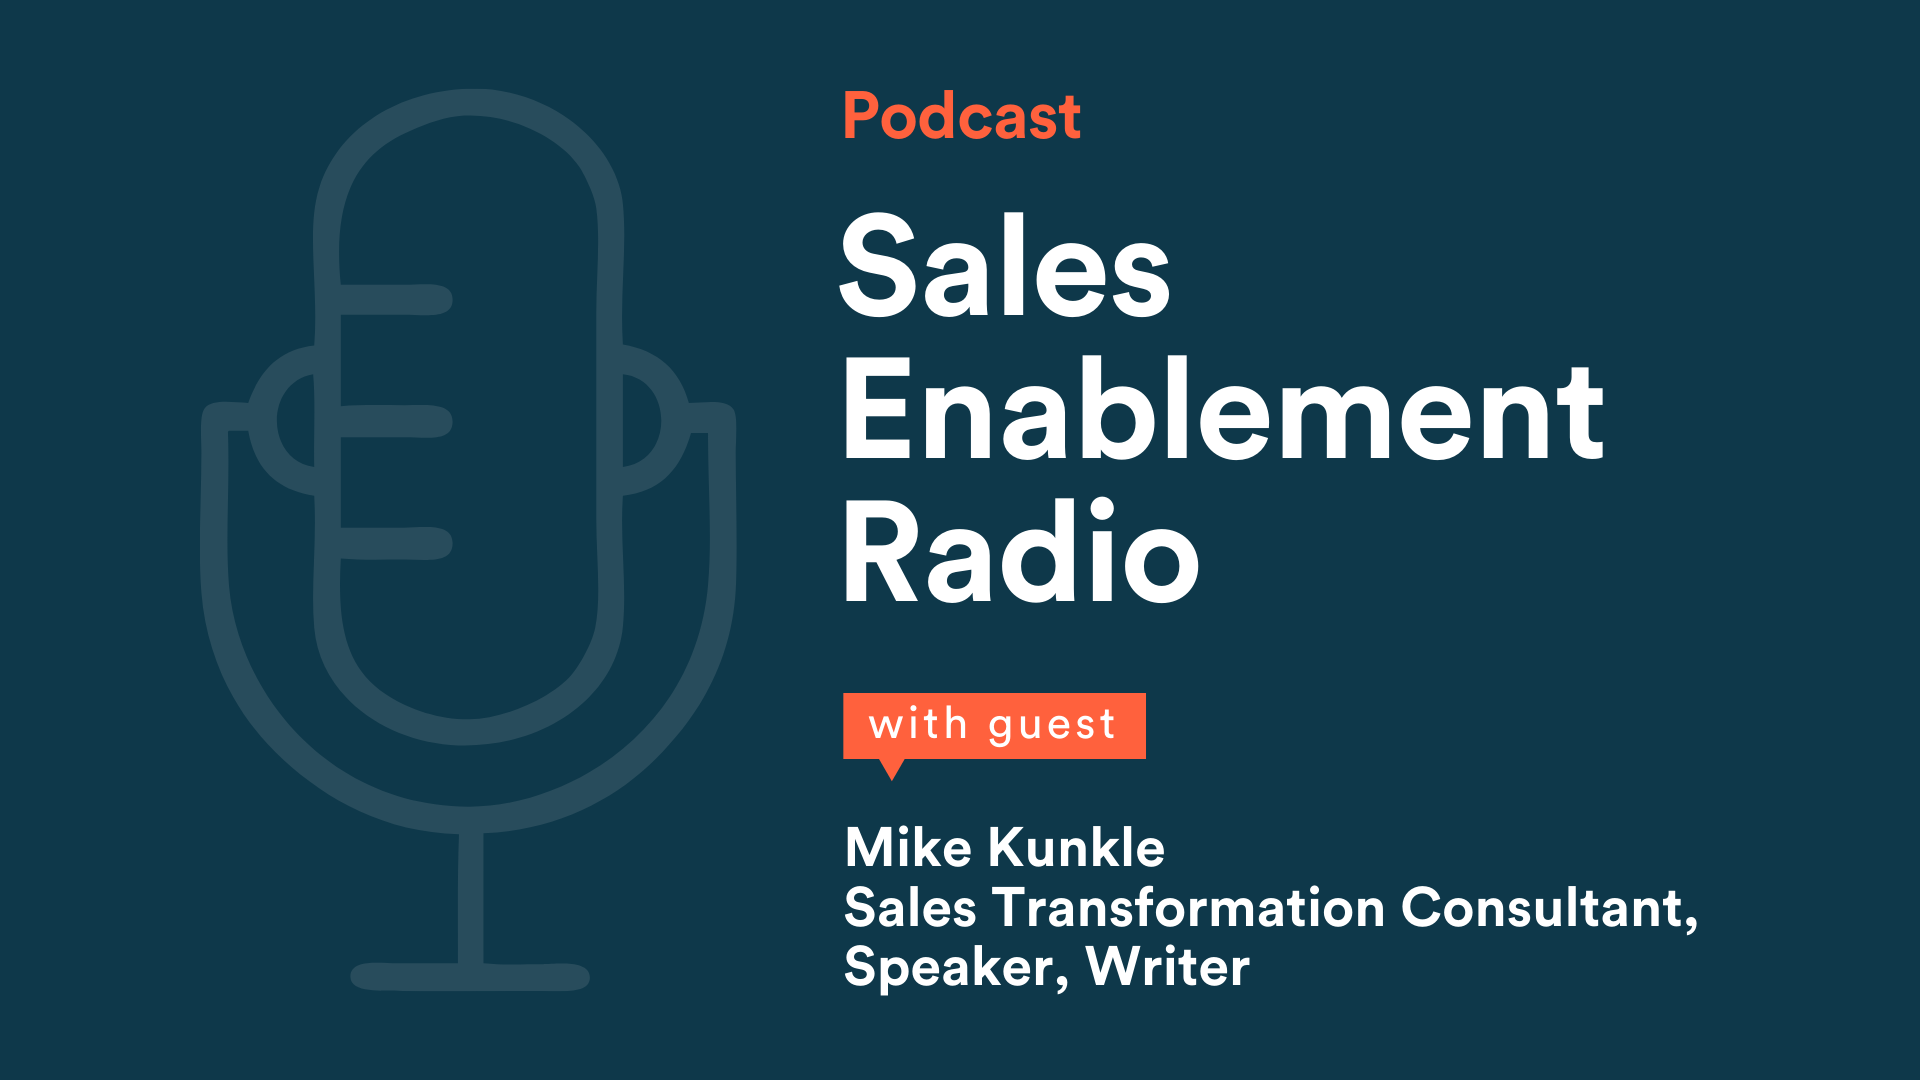 Podcast guest Mike Kunkle